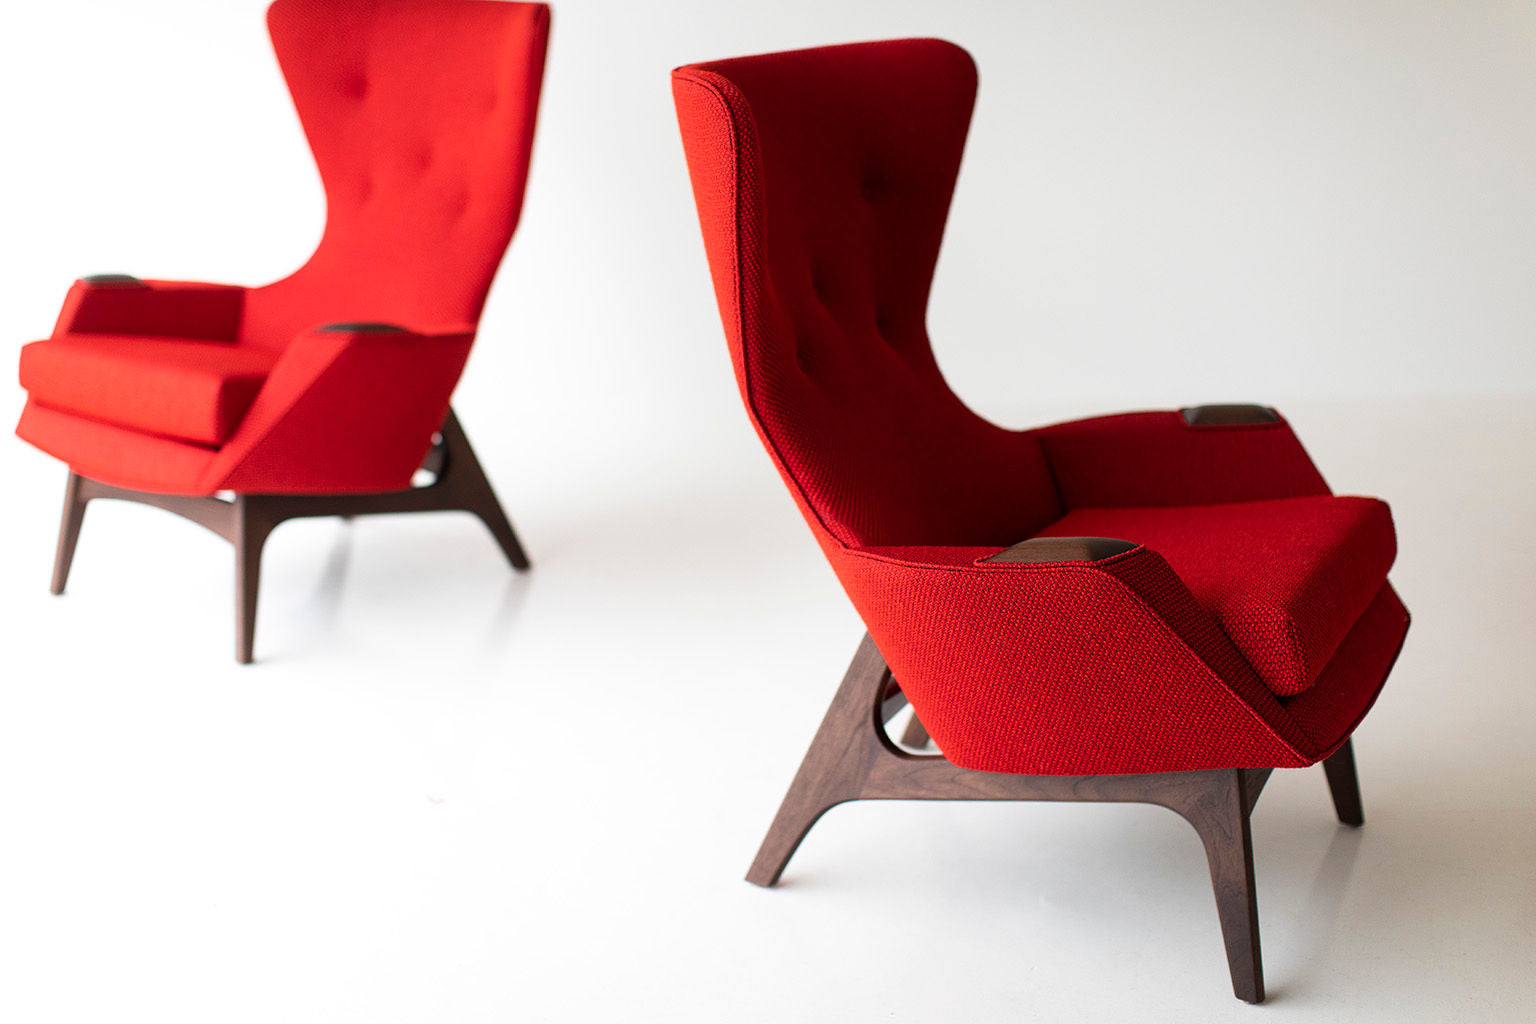 0T3A8904-Red-Wing-Chairs-02